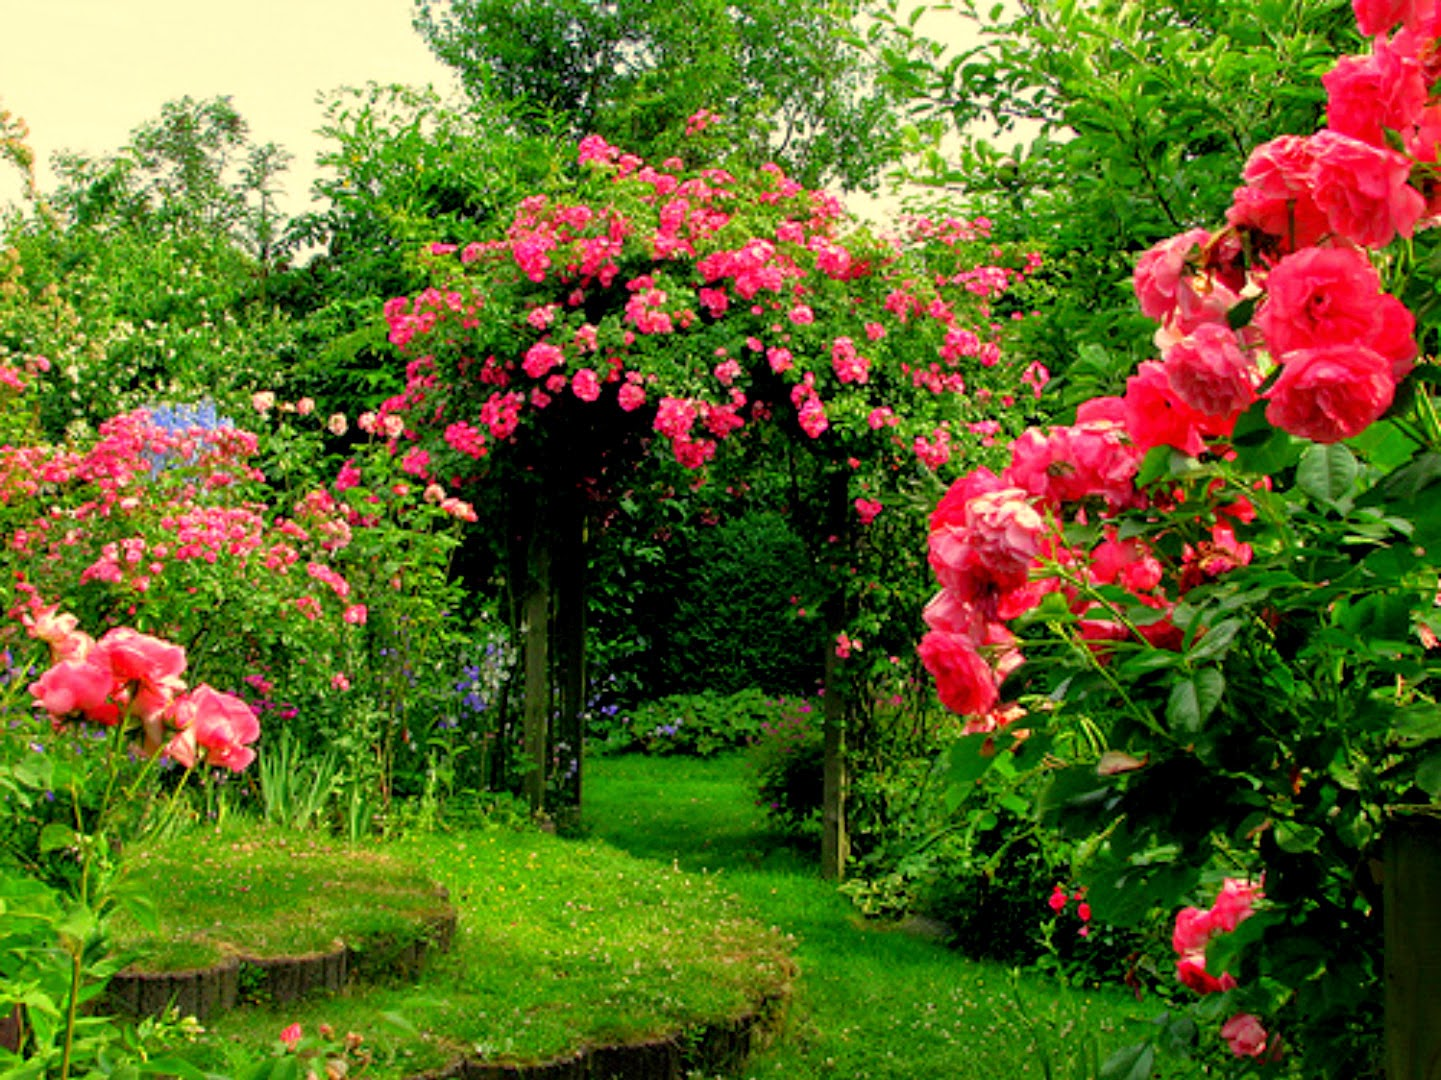 Rose Flower Garden Wallpaper